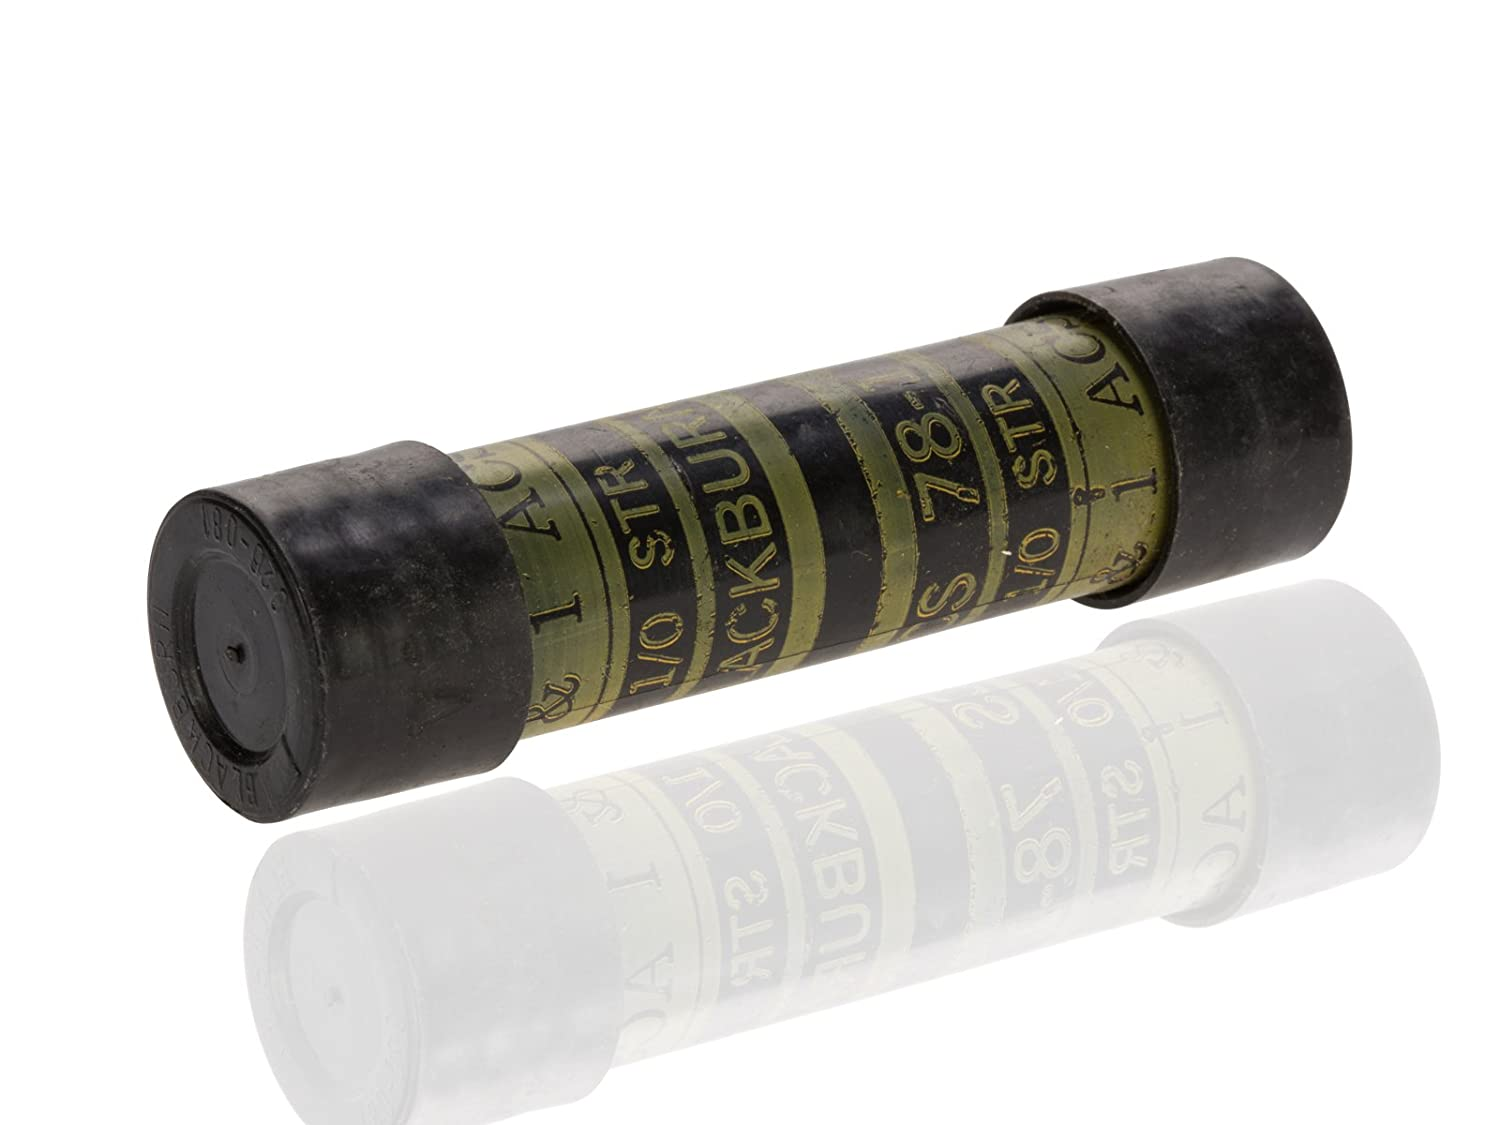 Dual Rated Compression Connector, Pre-Insulated Compression Sleeve, ISE Series, 1/0 ACSR, 1/0 AWG Main Conductor Range, 1/0 str AWG Tap Conductor Range, 5/8